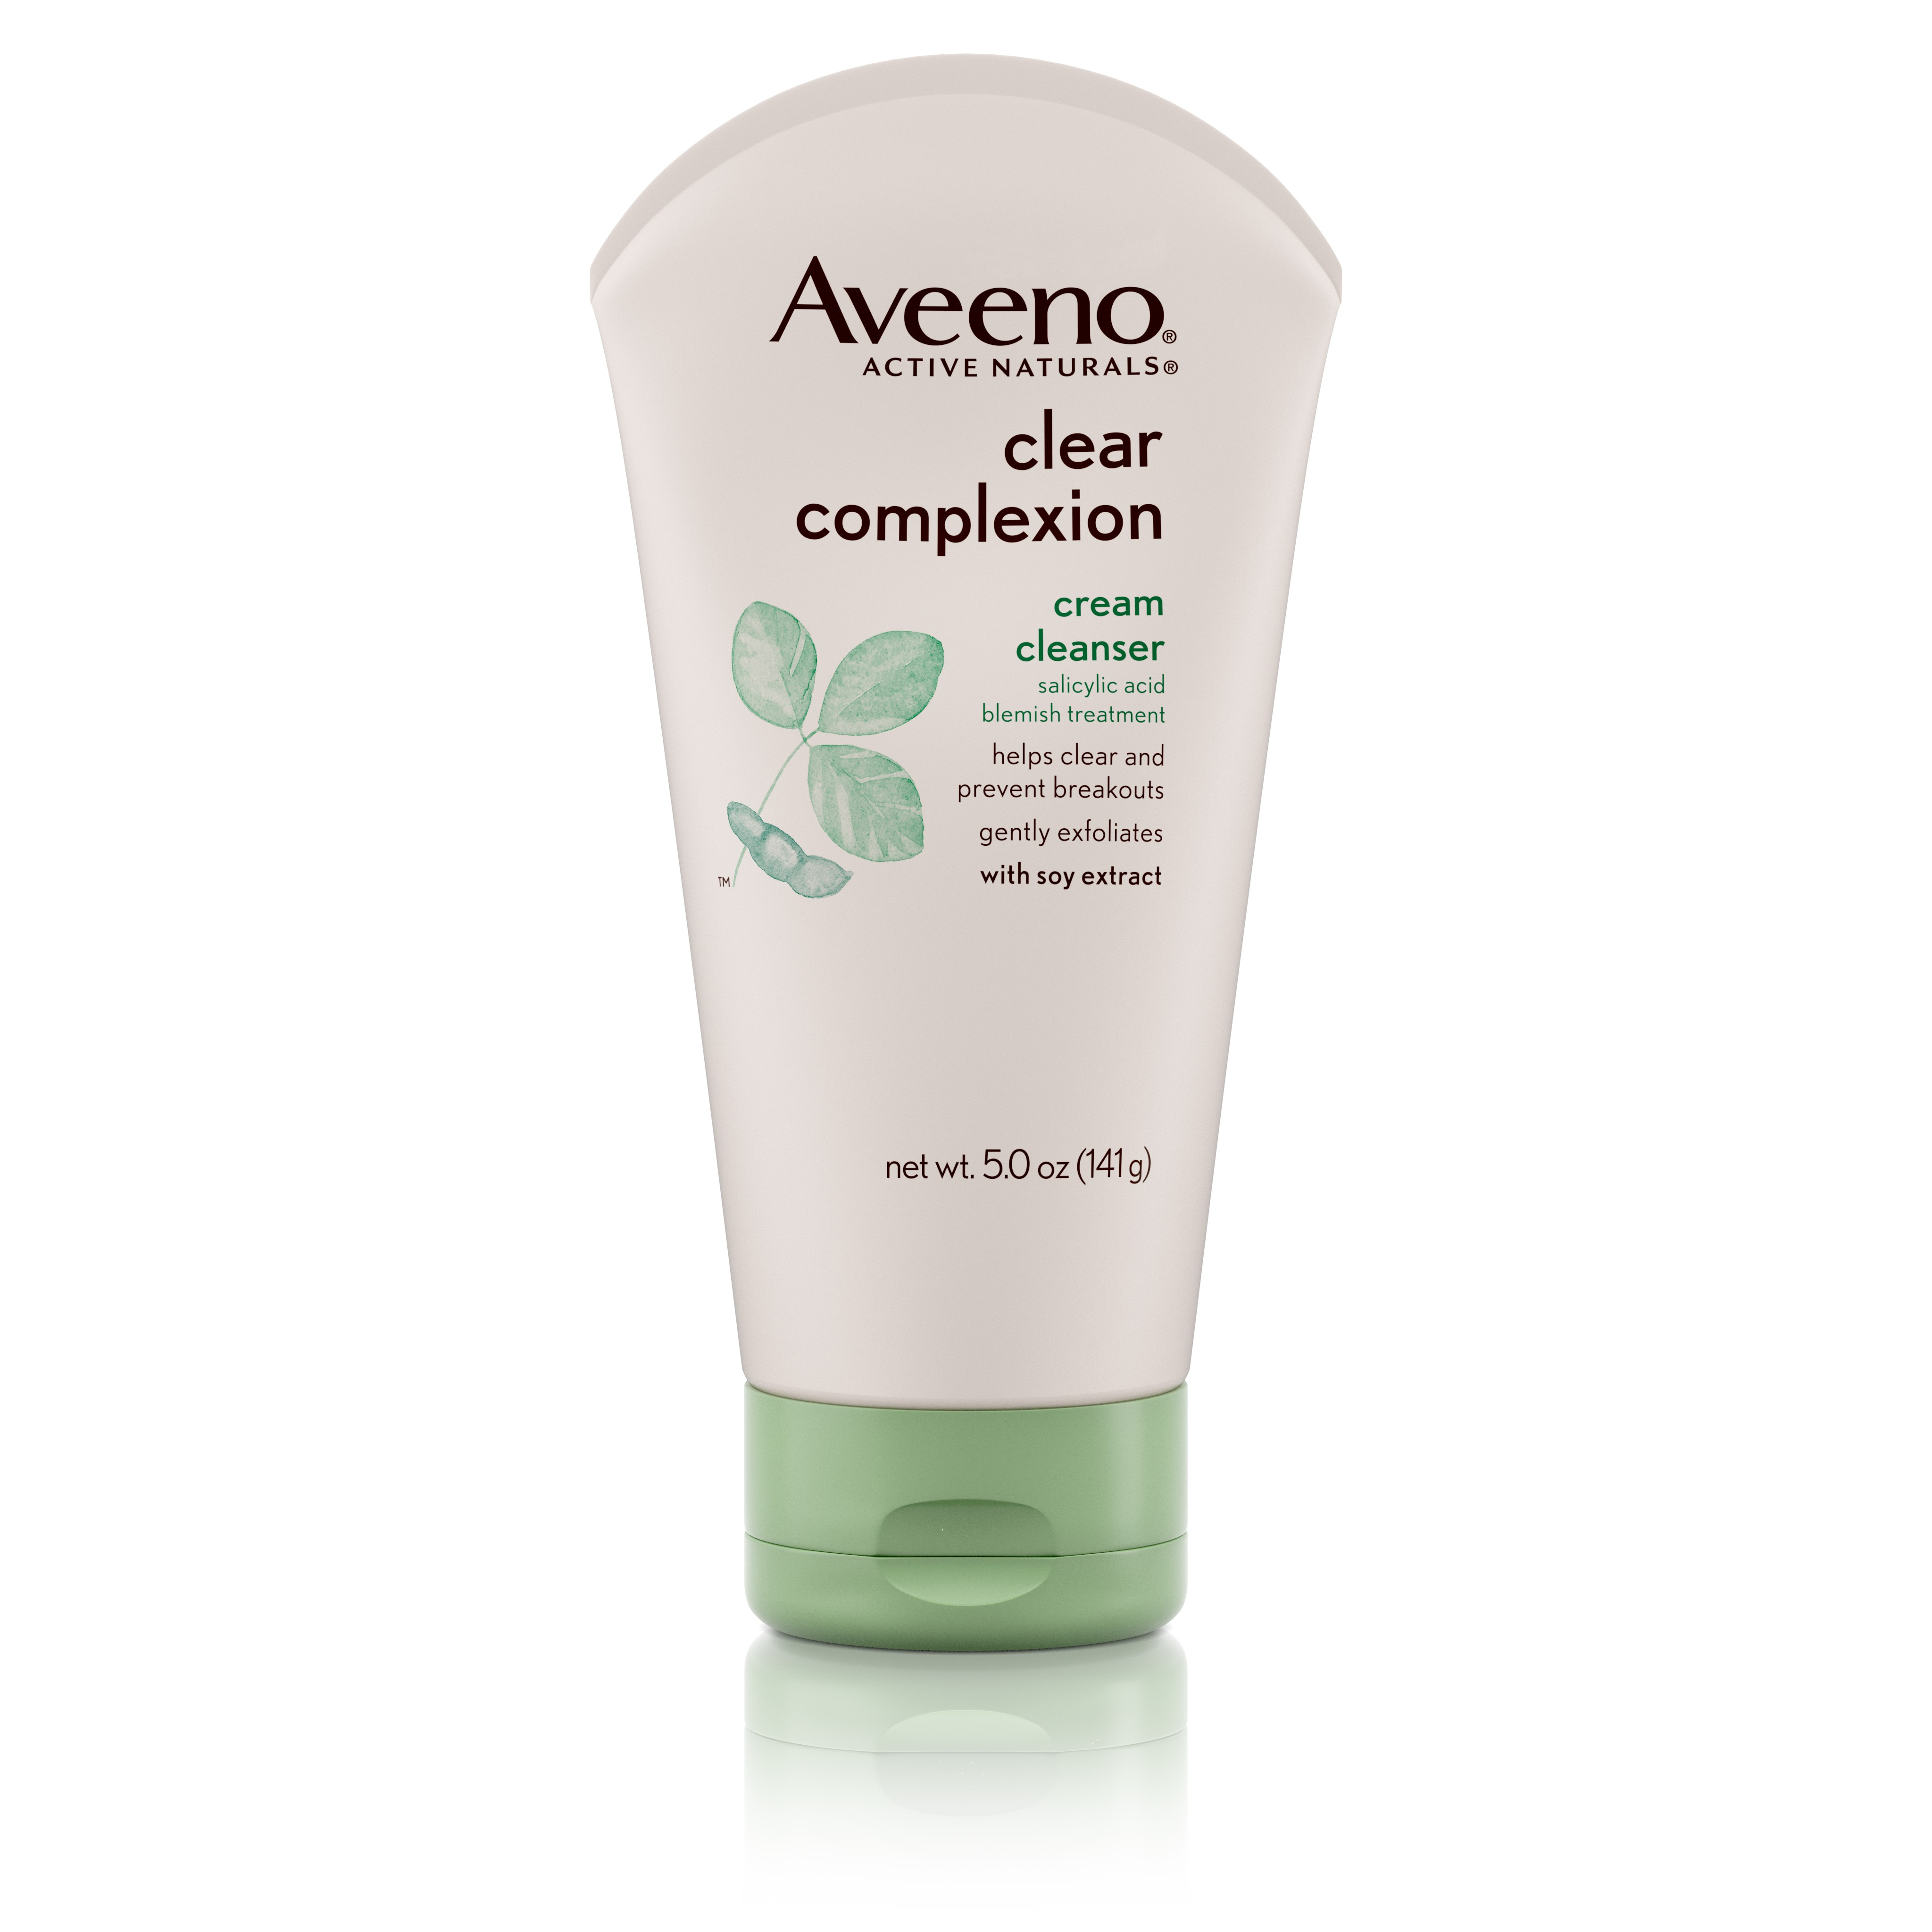 Aveeno Active Naturals Clear Complexion Cream Cleanser, 5?oz - Walmart.com